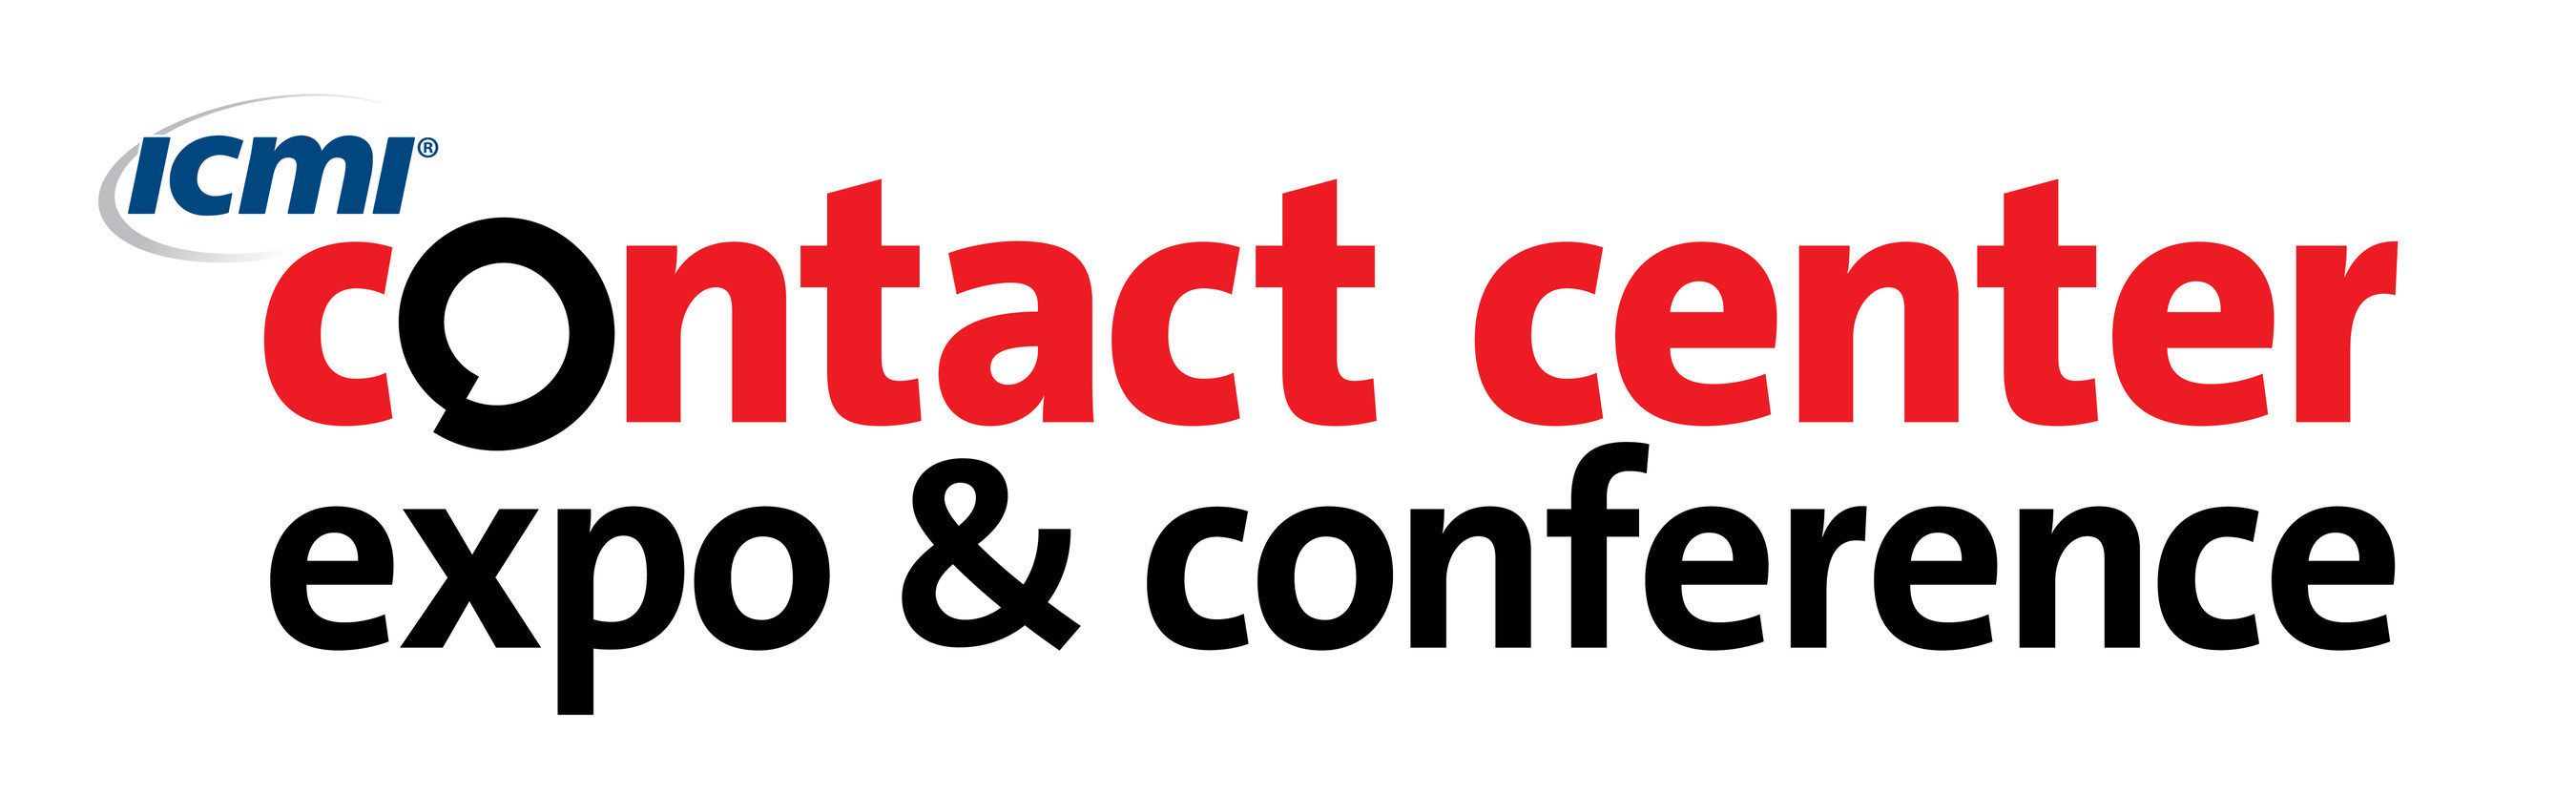 The 2015 Contact Center Expo & Conference will take place May 4-7 at the Walt Disney World Dolphin Resort in Lake Buena Vista, Florida.